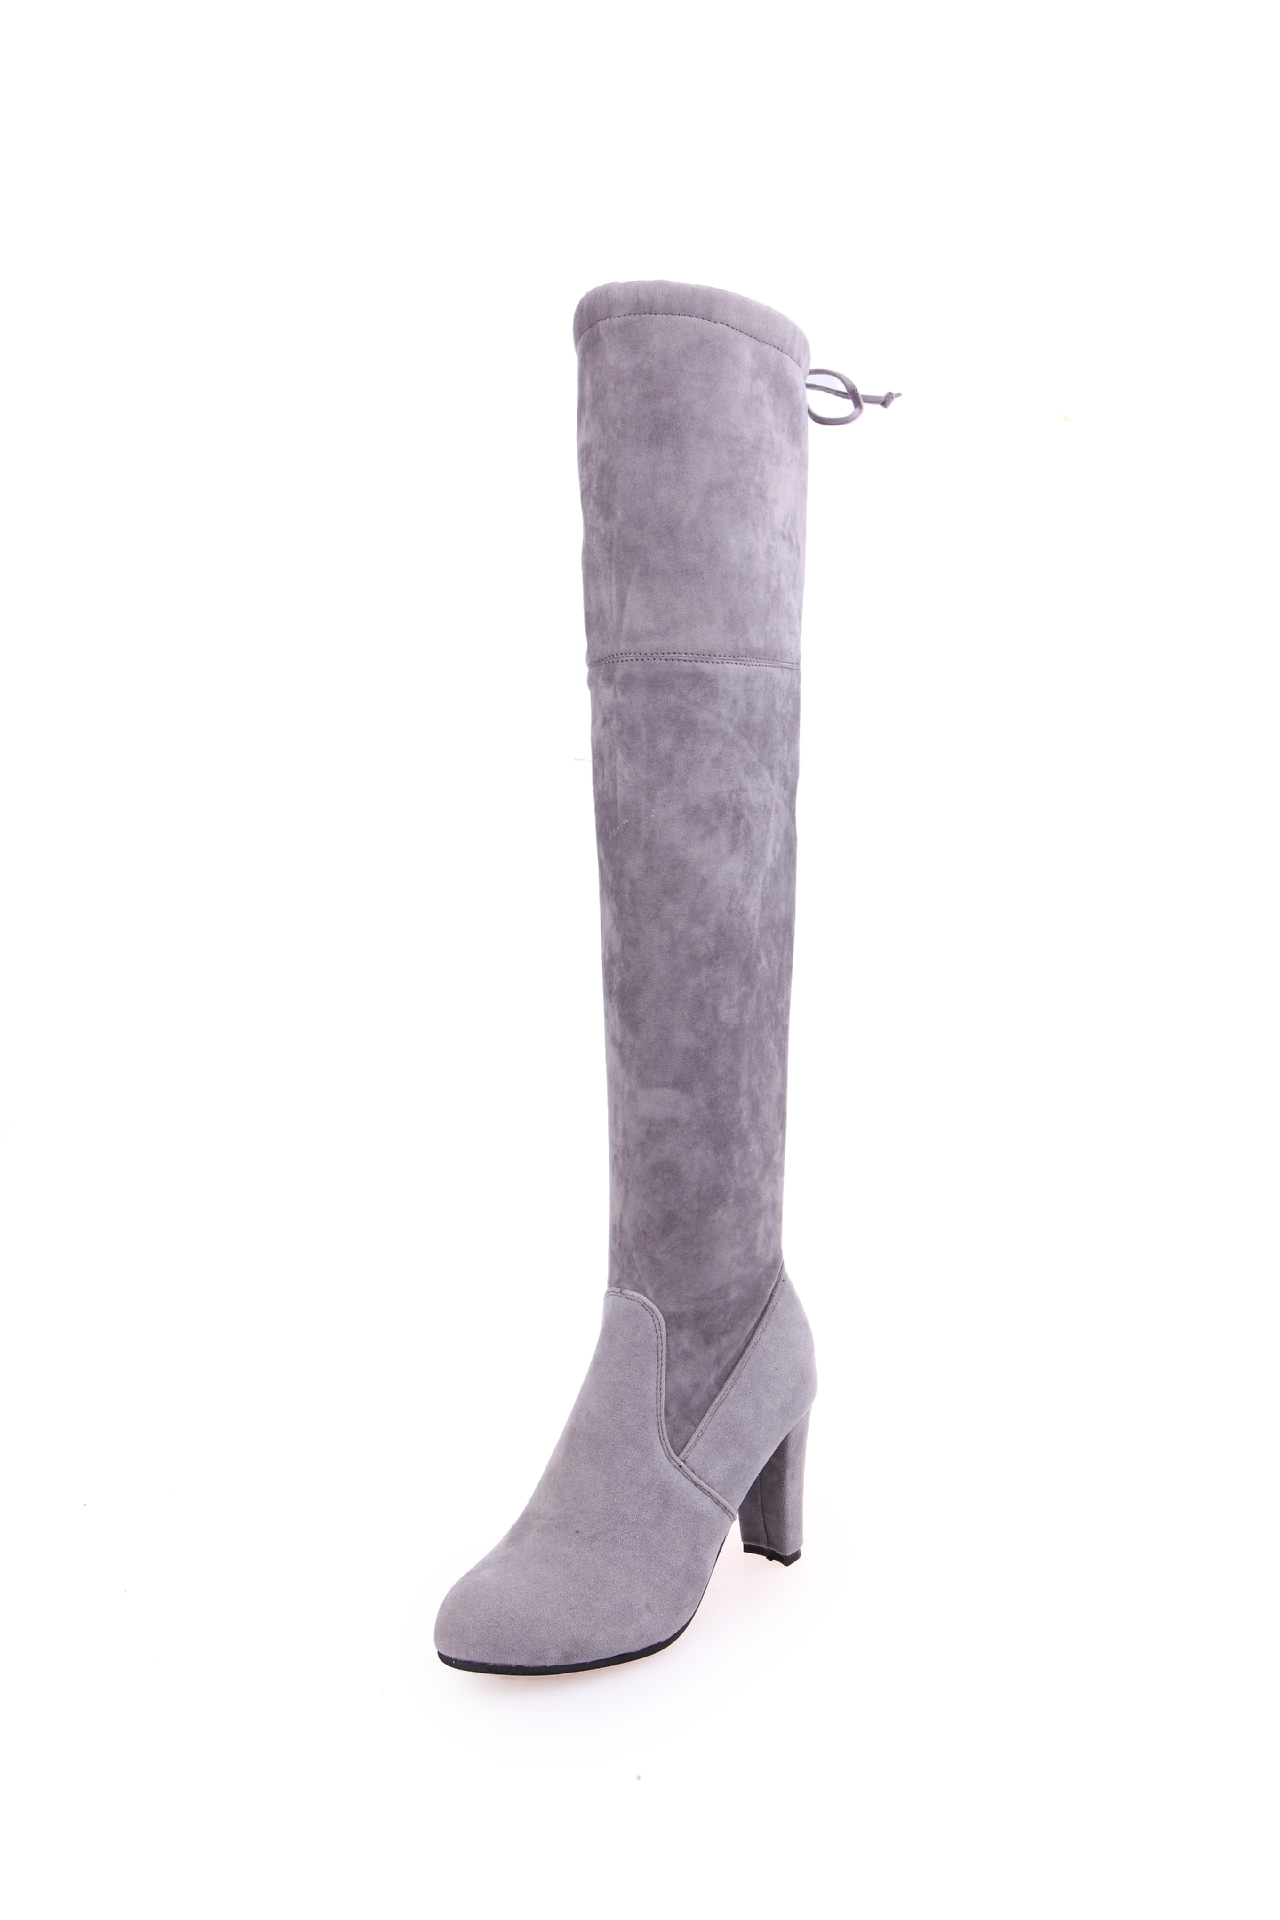 stretch suede the knee boots flat thigh high